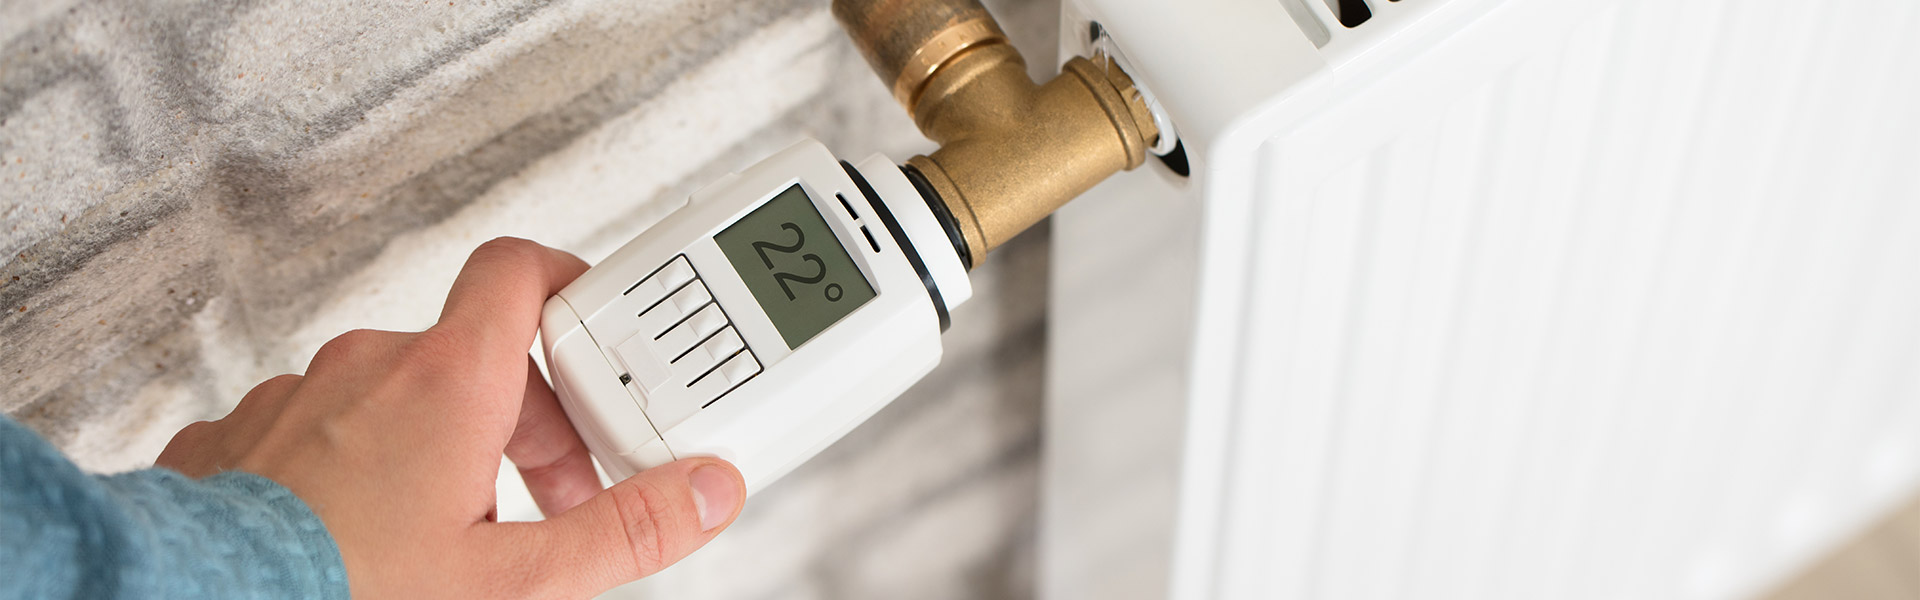 Person Adjusting Temperature On Thermostat